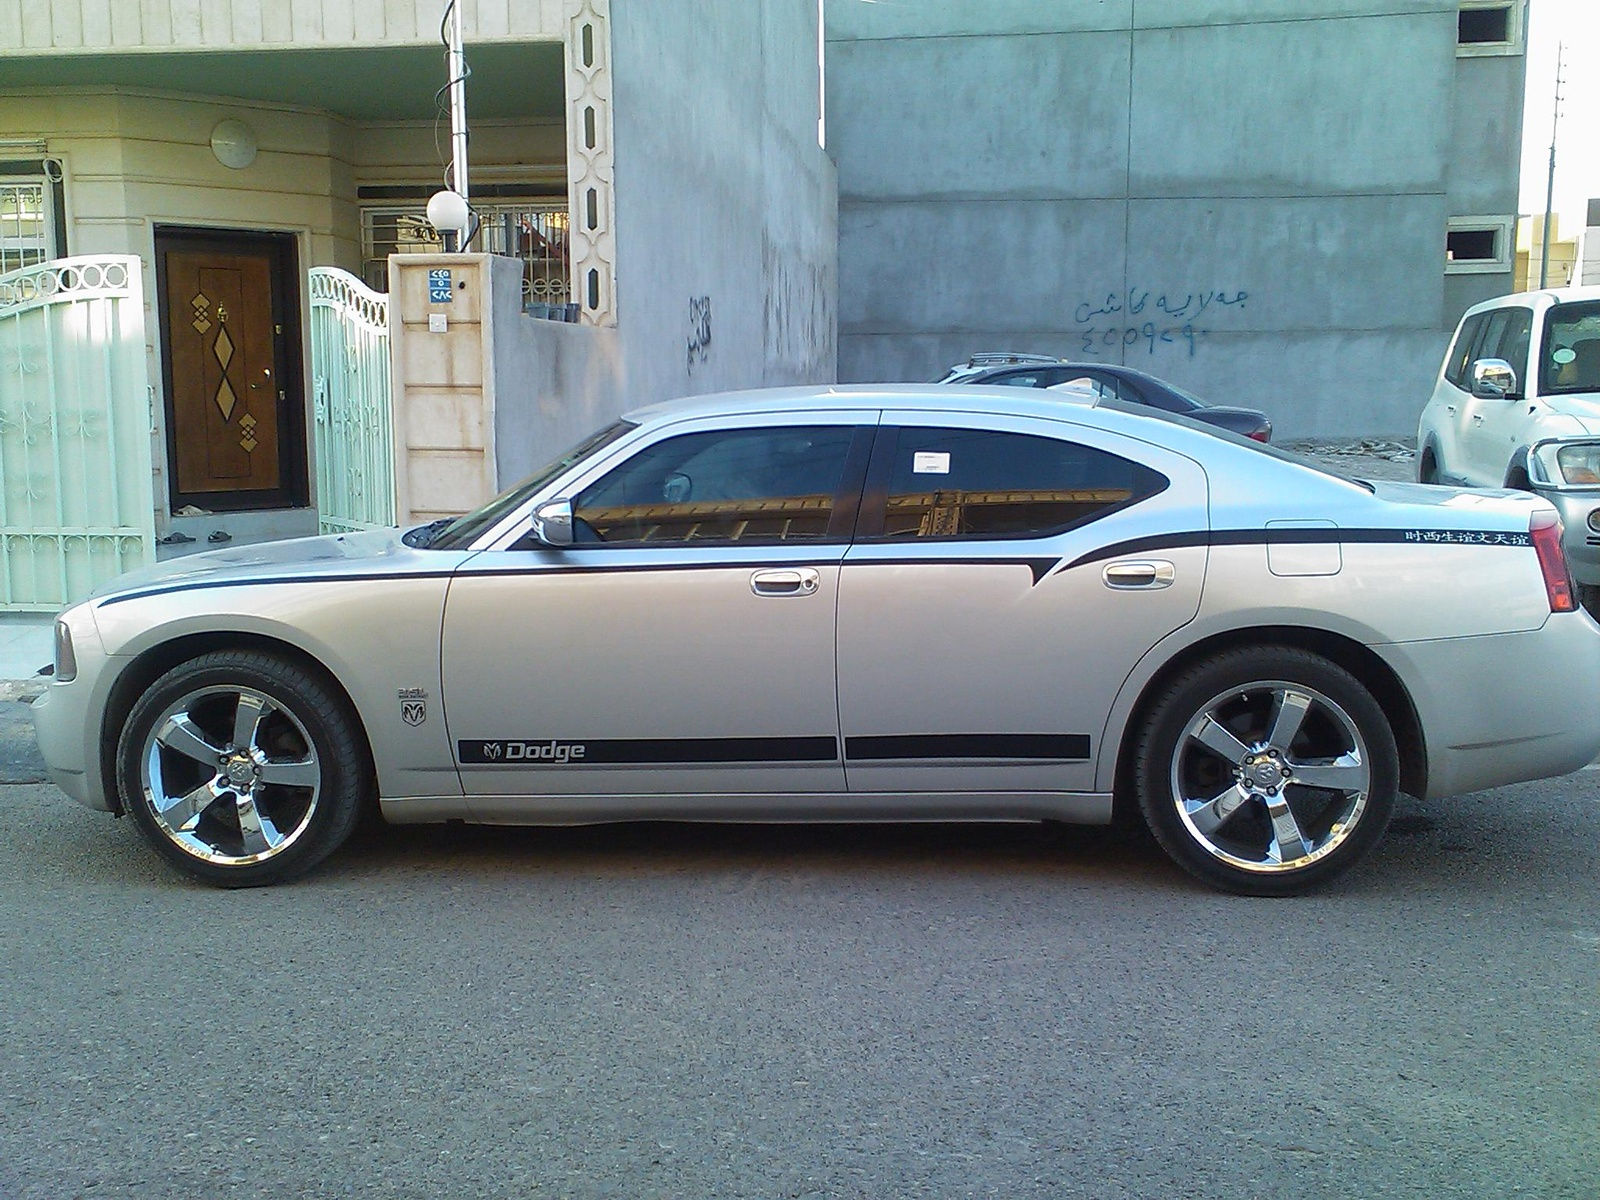 2007 Dodge Charger #17